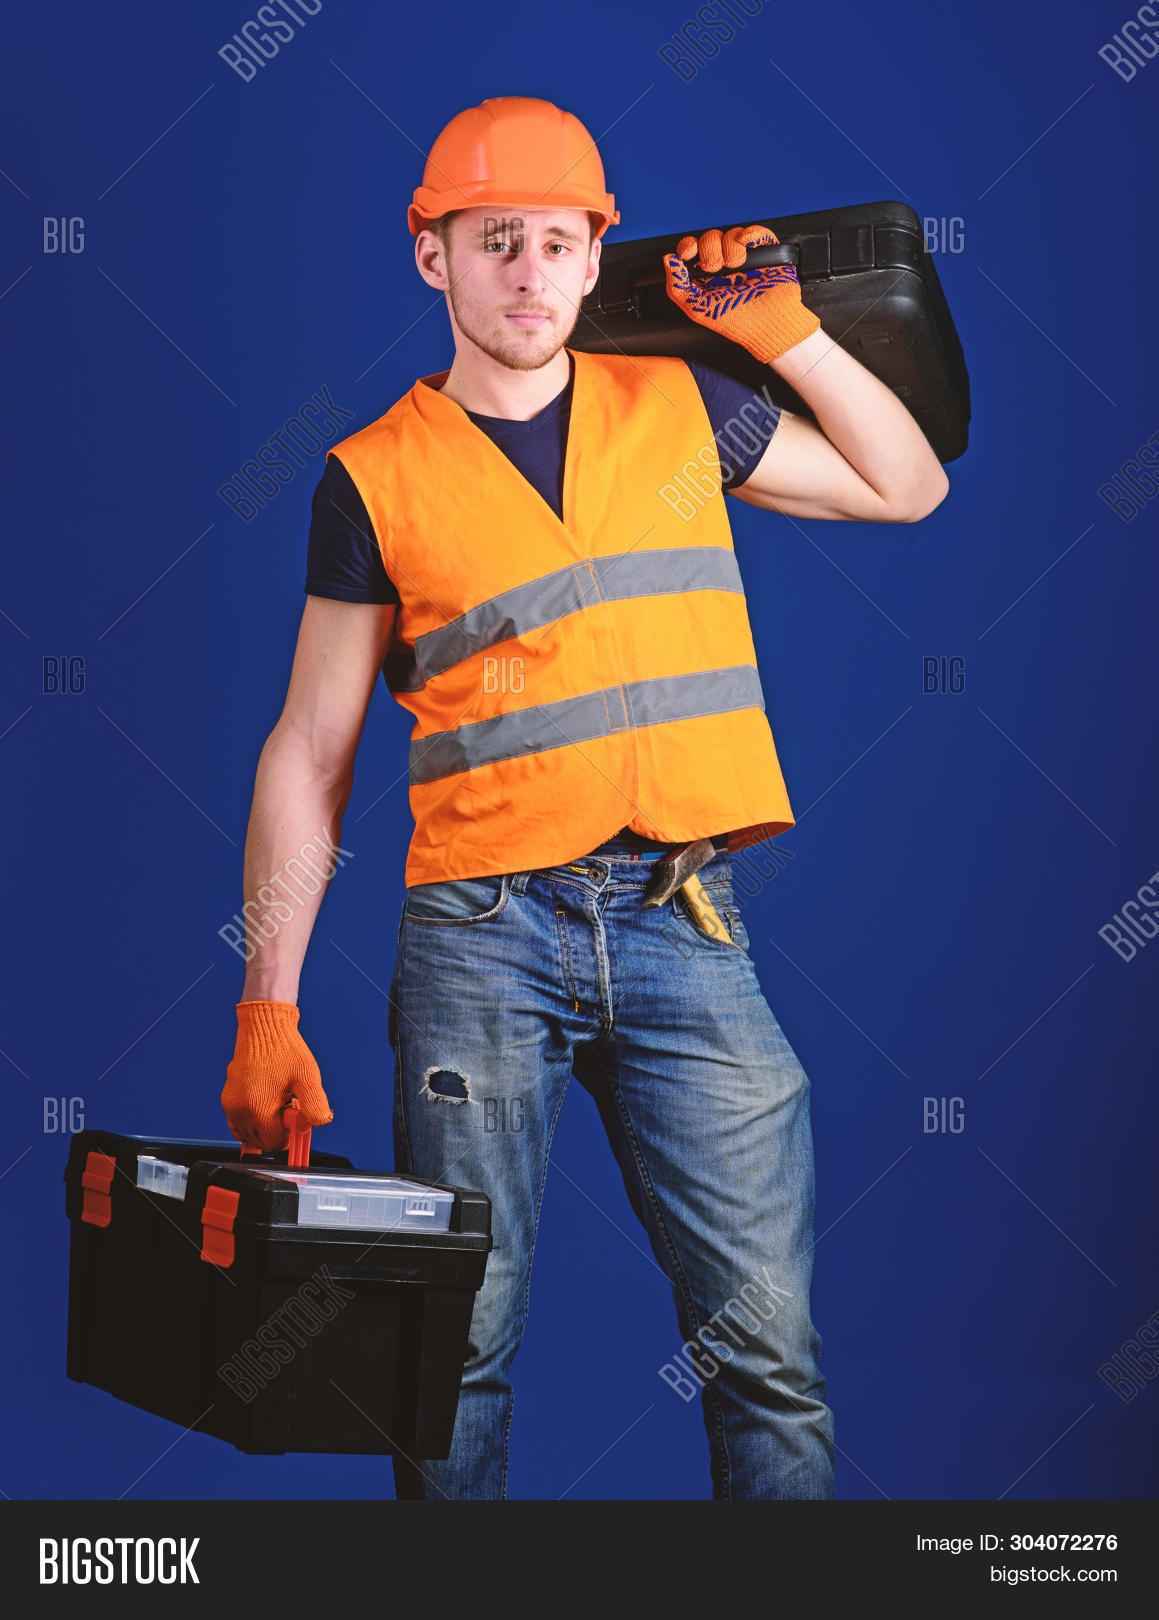 background,beard,bearded,blue,build,builder,calm,carry,case,caucasian,concept,construction,constructor,contractor,developer,engineering,equipment,equipped,face,guy,handsome,handyman,hard,hat,helmet,helpful,hold,laborer,man,mechanic,problem,professional,ready,repair,repairer,repairman,service,shoulder,solve,strong,suitcase,technician,tool,toolbox,uniform,unshaven,work,worker